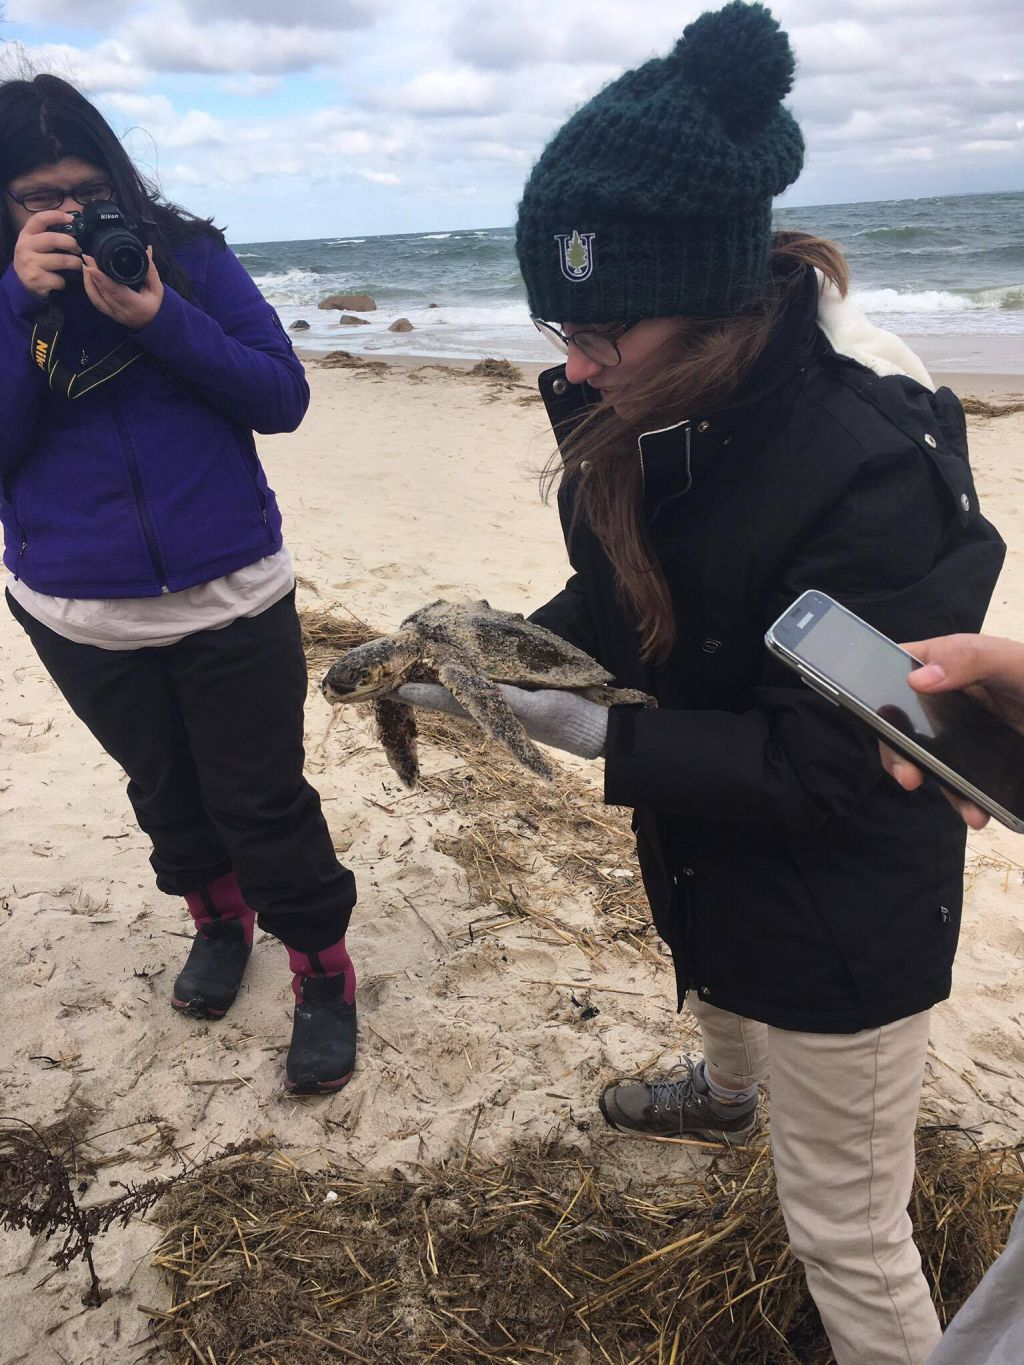 Unity students responded to calls about turtles found on the beach.